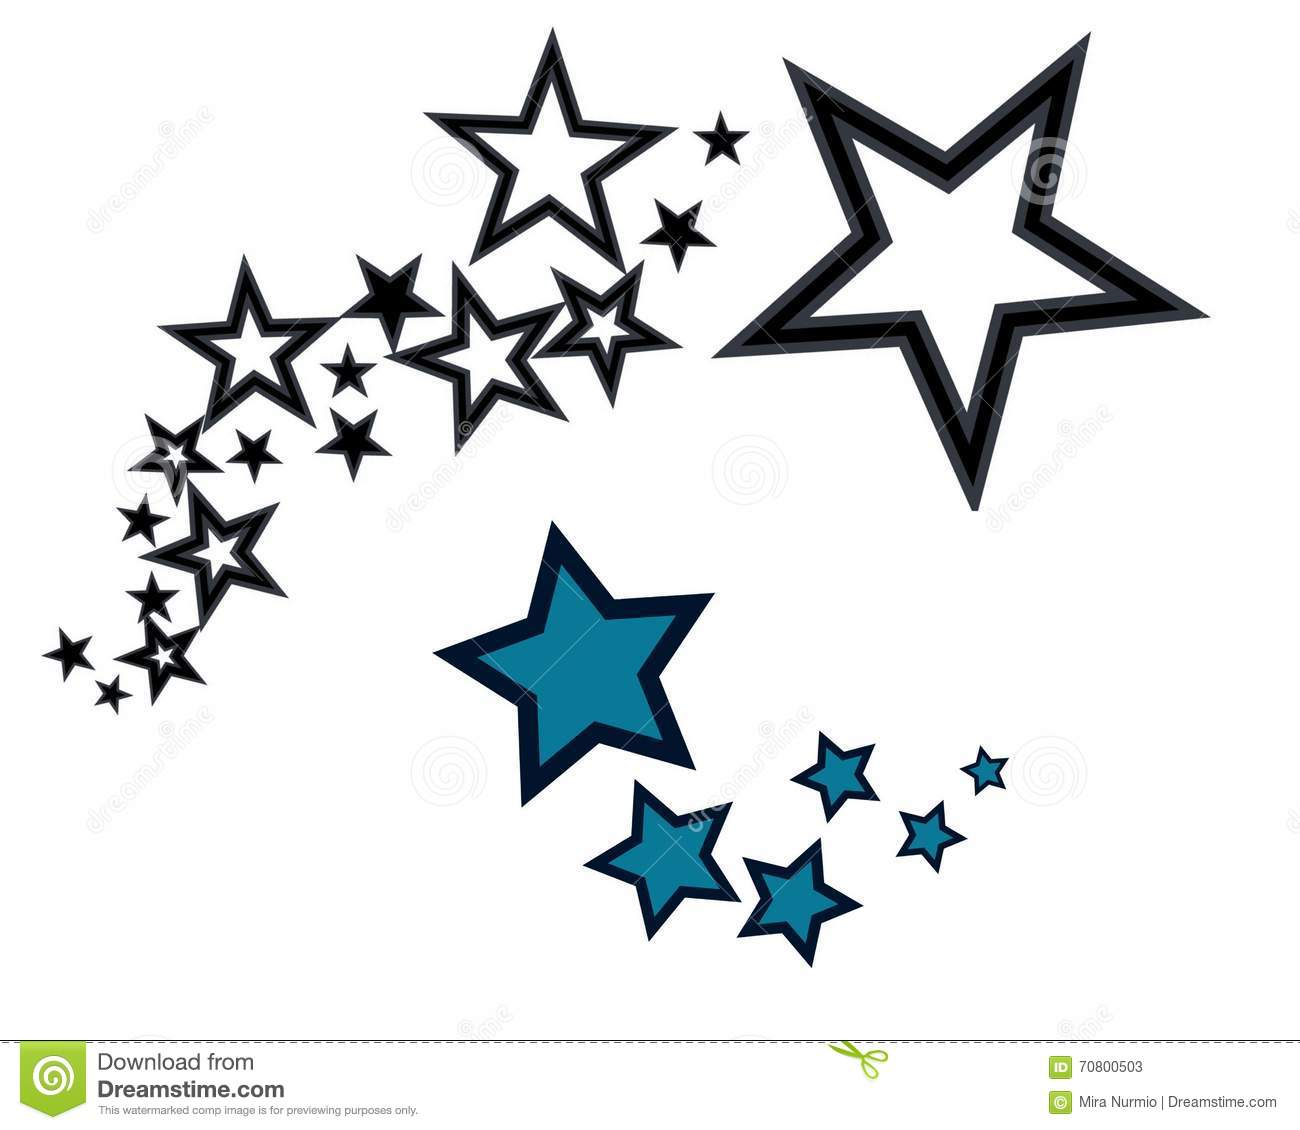 Star Cluster Clipart.